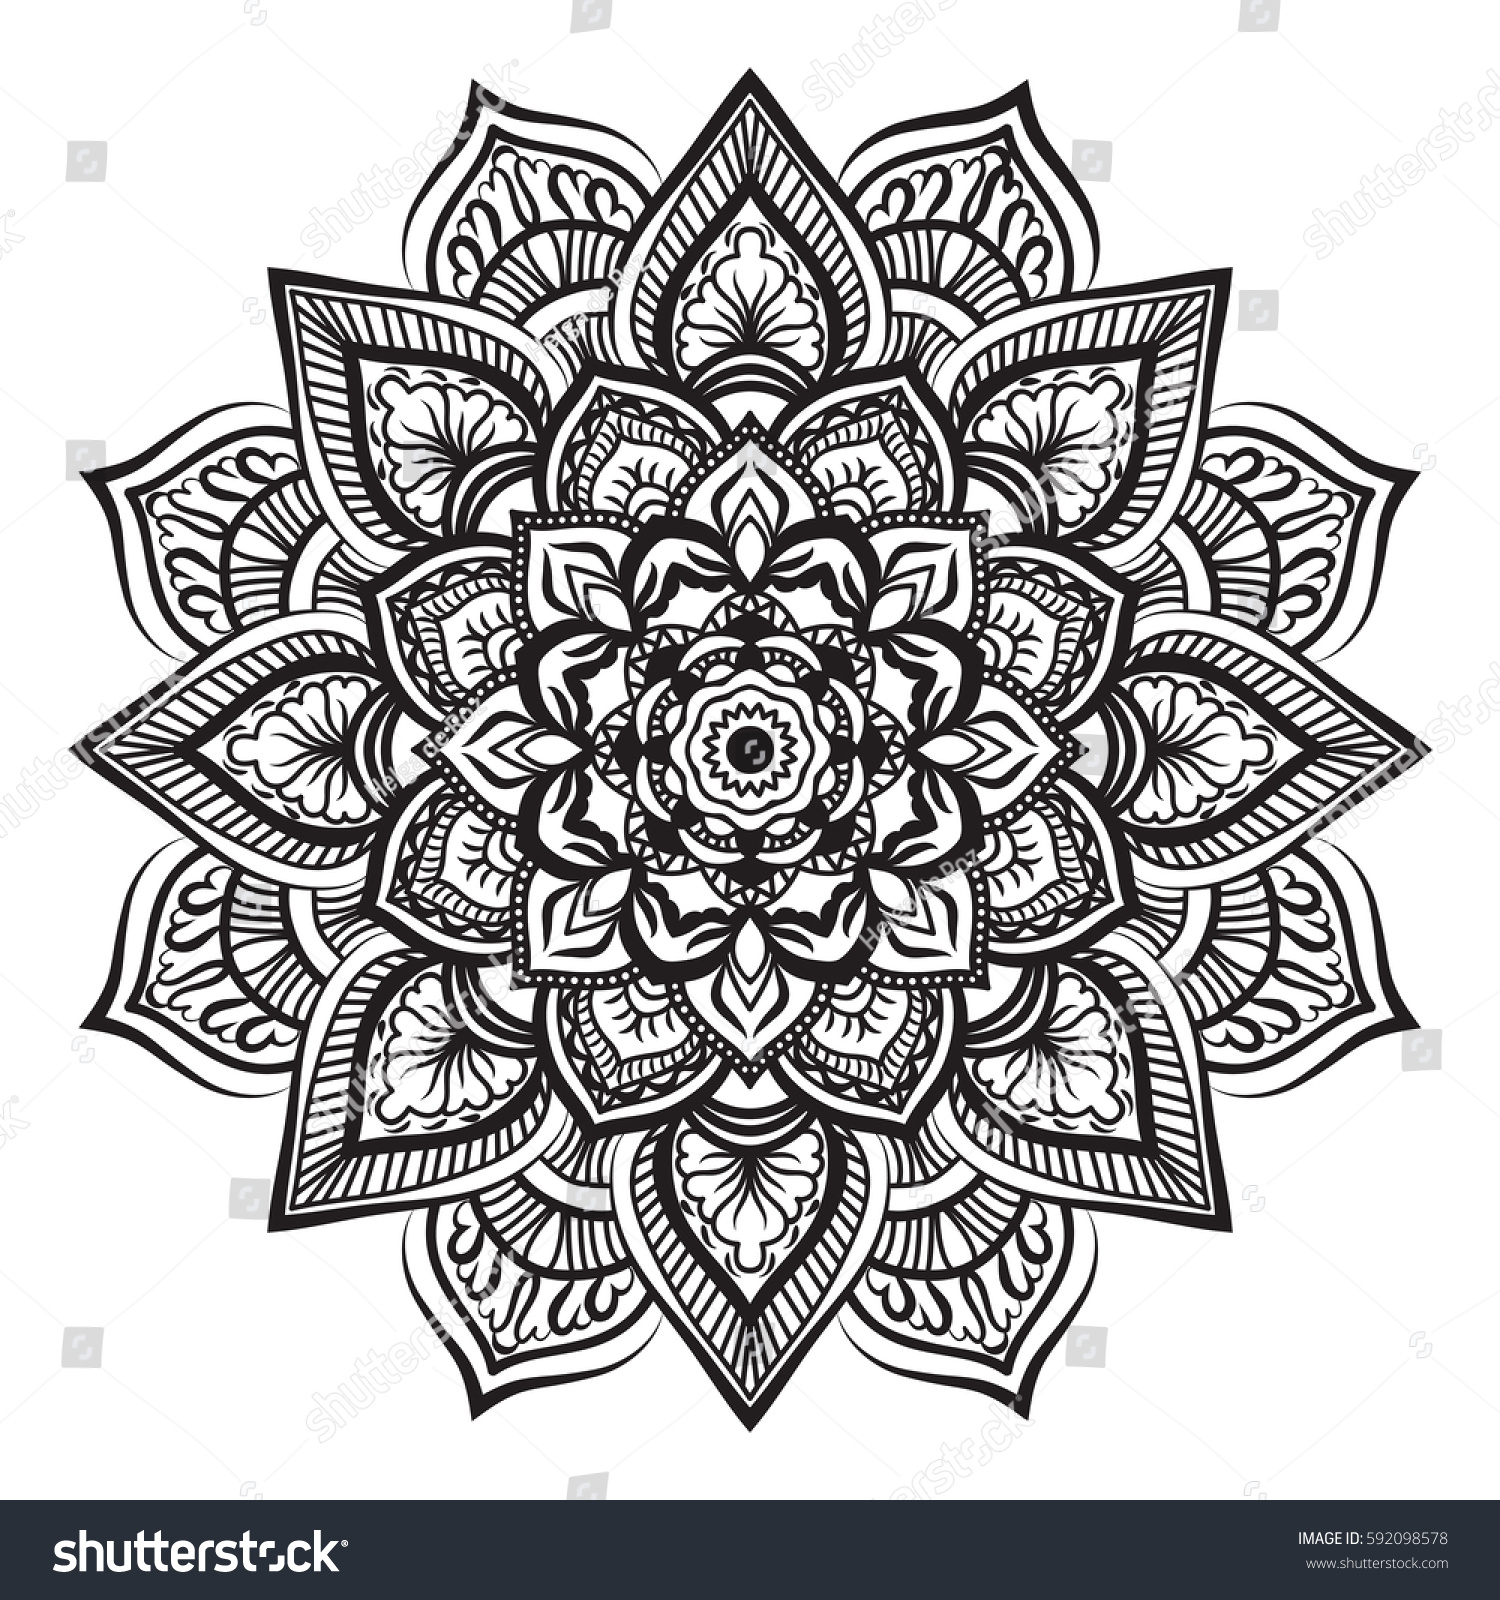 Line Drawing Mandala : Mandala line art antistress coloring book stock vector